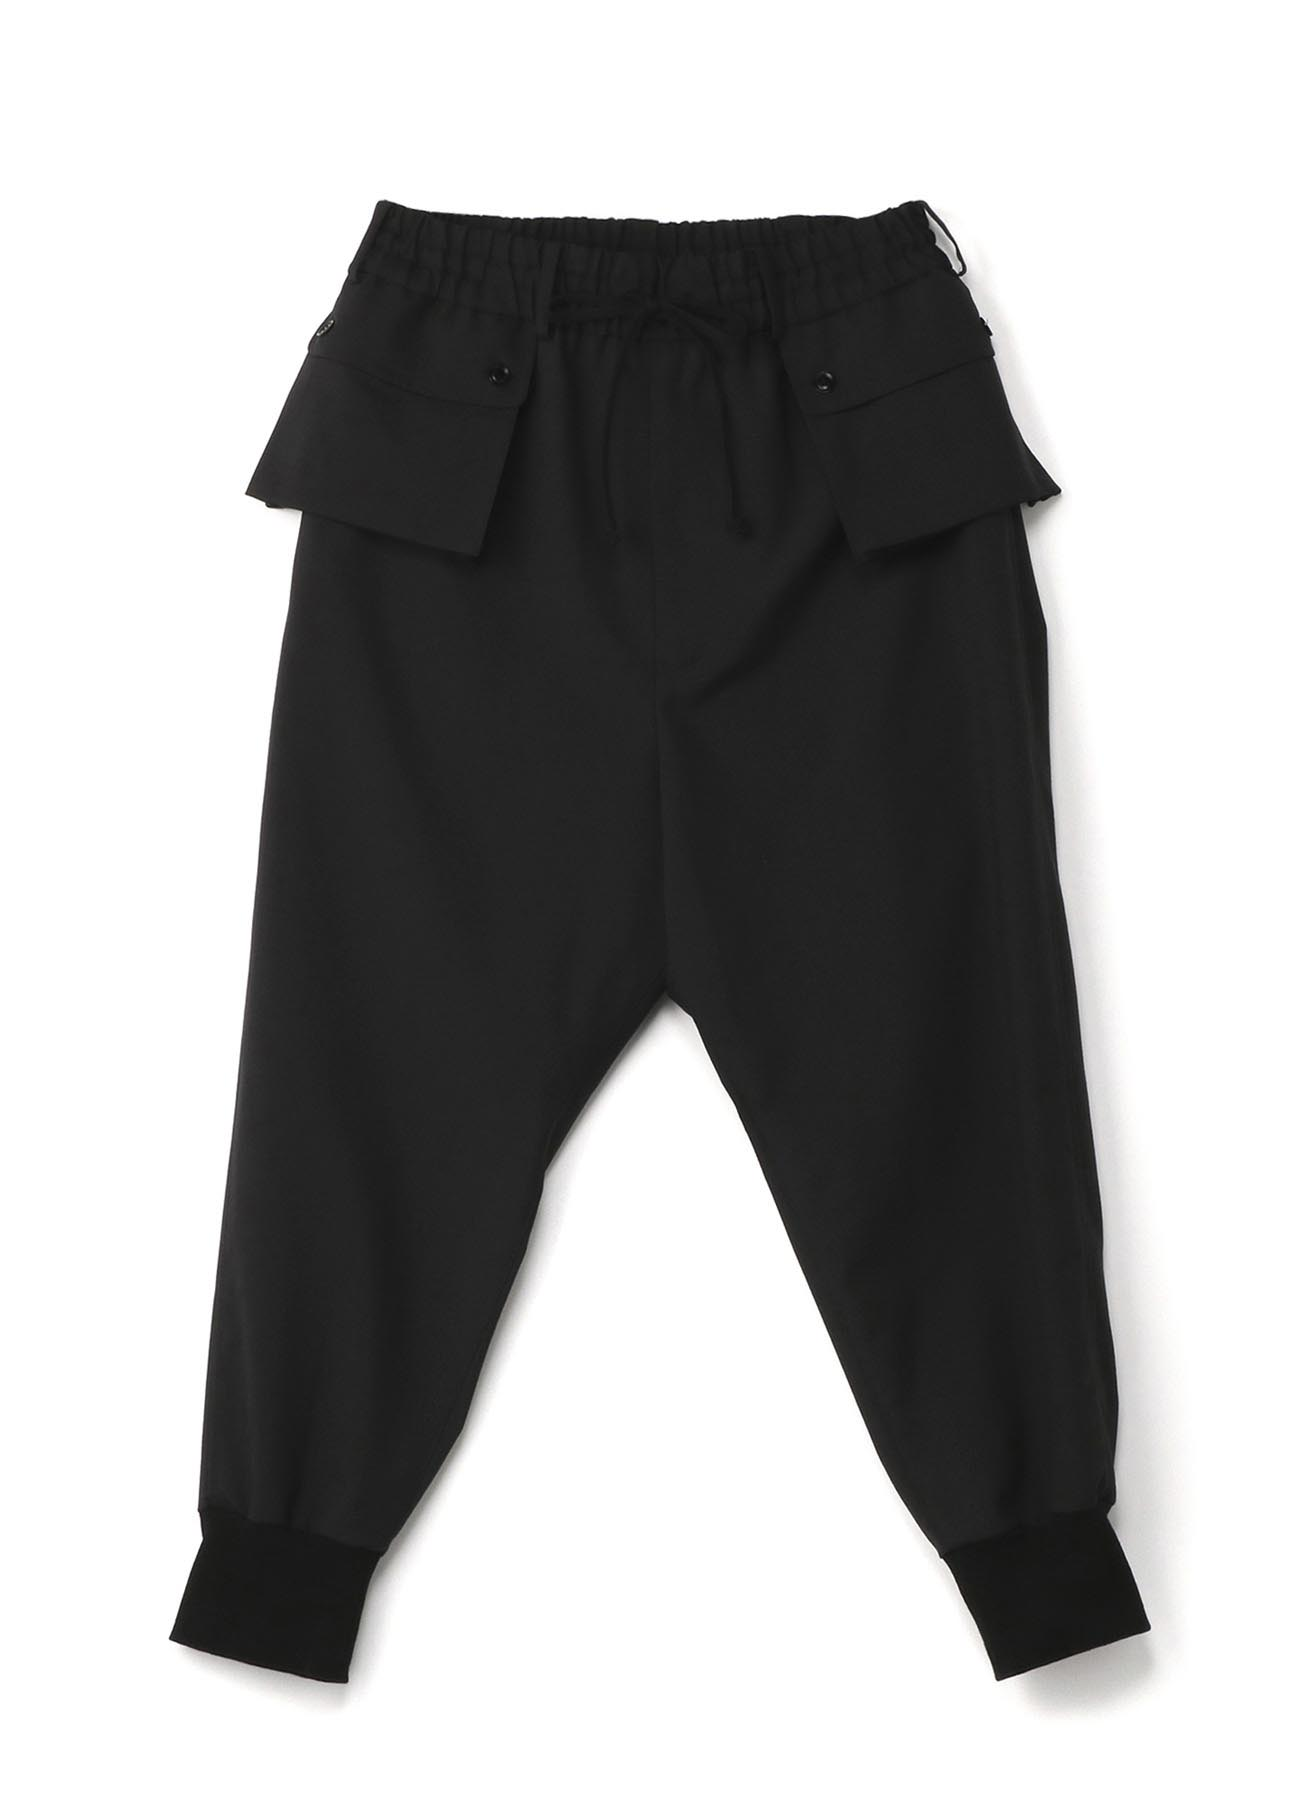 T/W Tropical Hem rib Pocket Pants